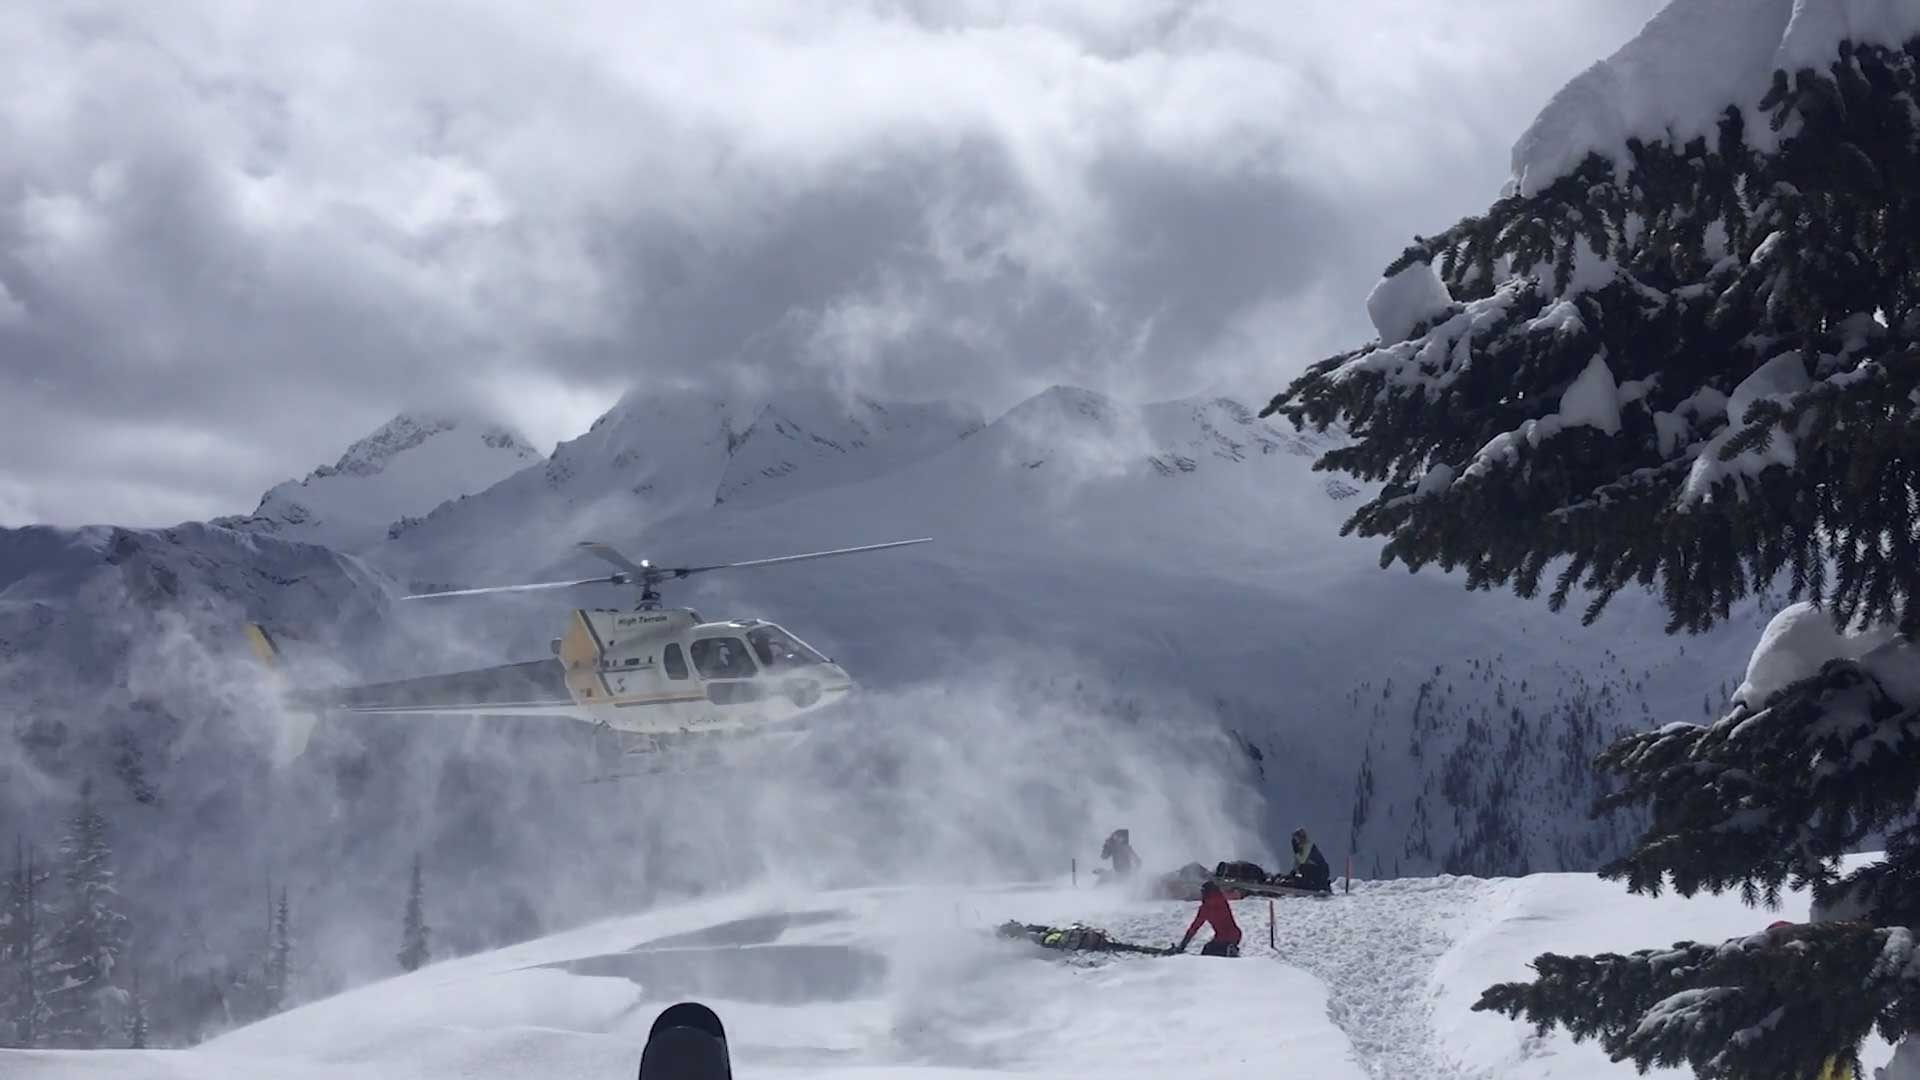 British Columbia backcountry-skiing with a helicopter